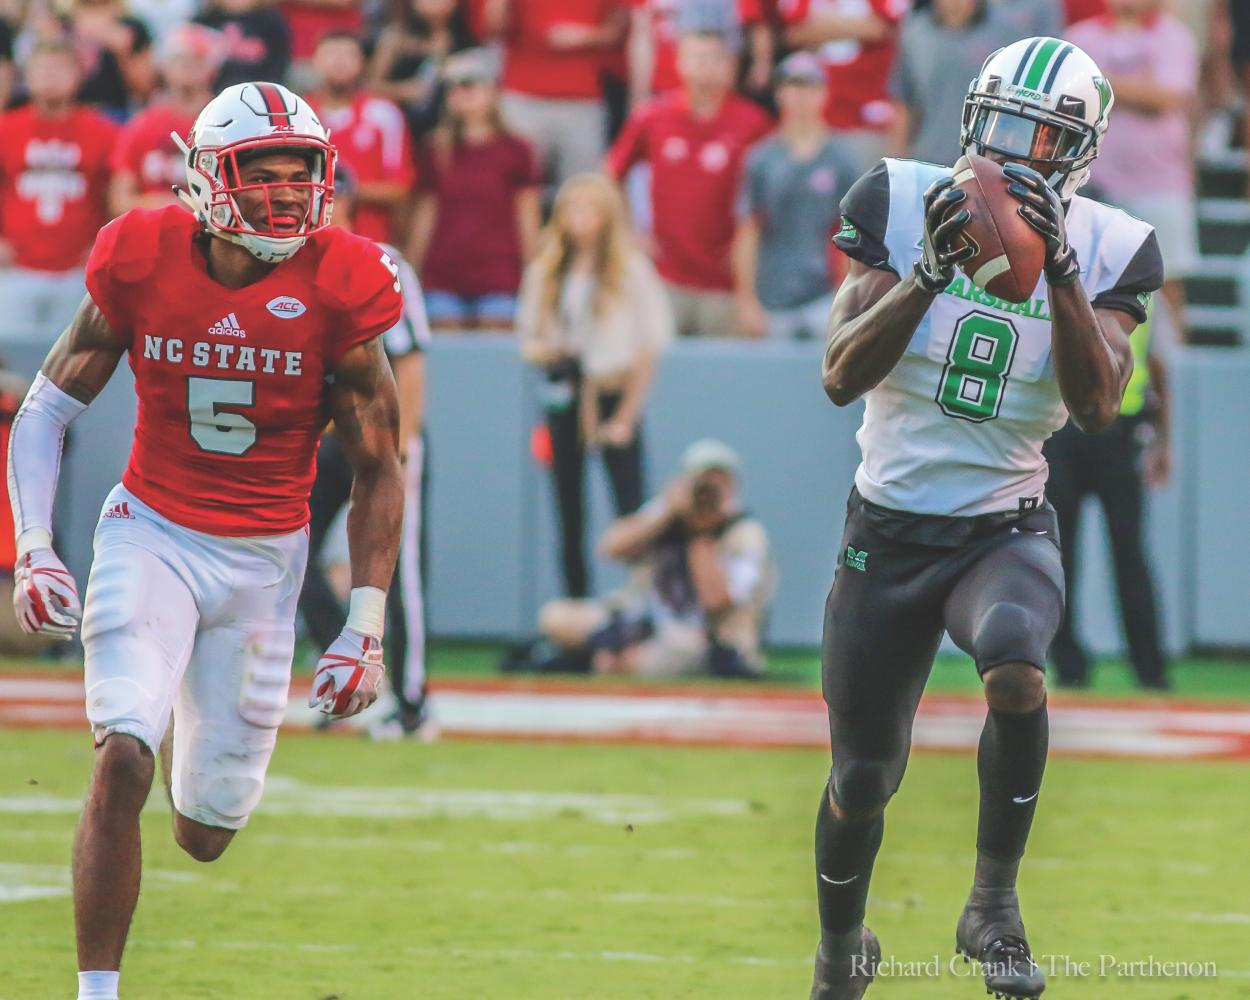 Marshall redshirt junior wide receiver Tyre Brady (right) breaks away from NC State cornerback Johnathan Alston during the Thundering Herd's 37-20 loss to the Wolfpack in Raleigh, N.C. at Carter-Finley Stadium.